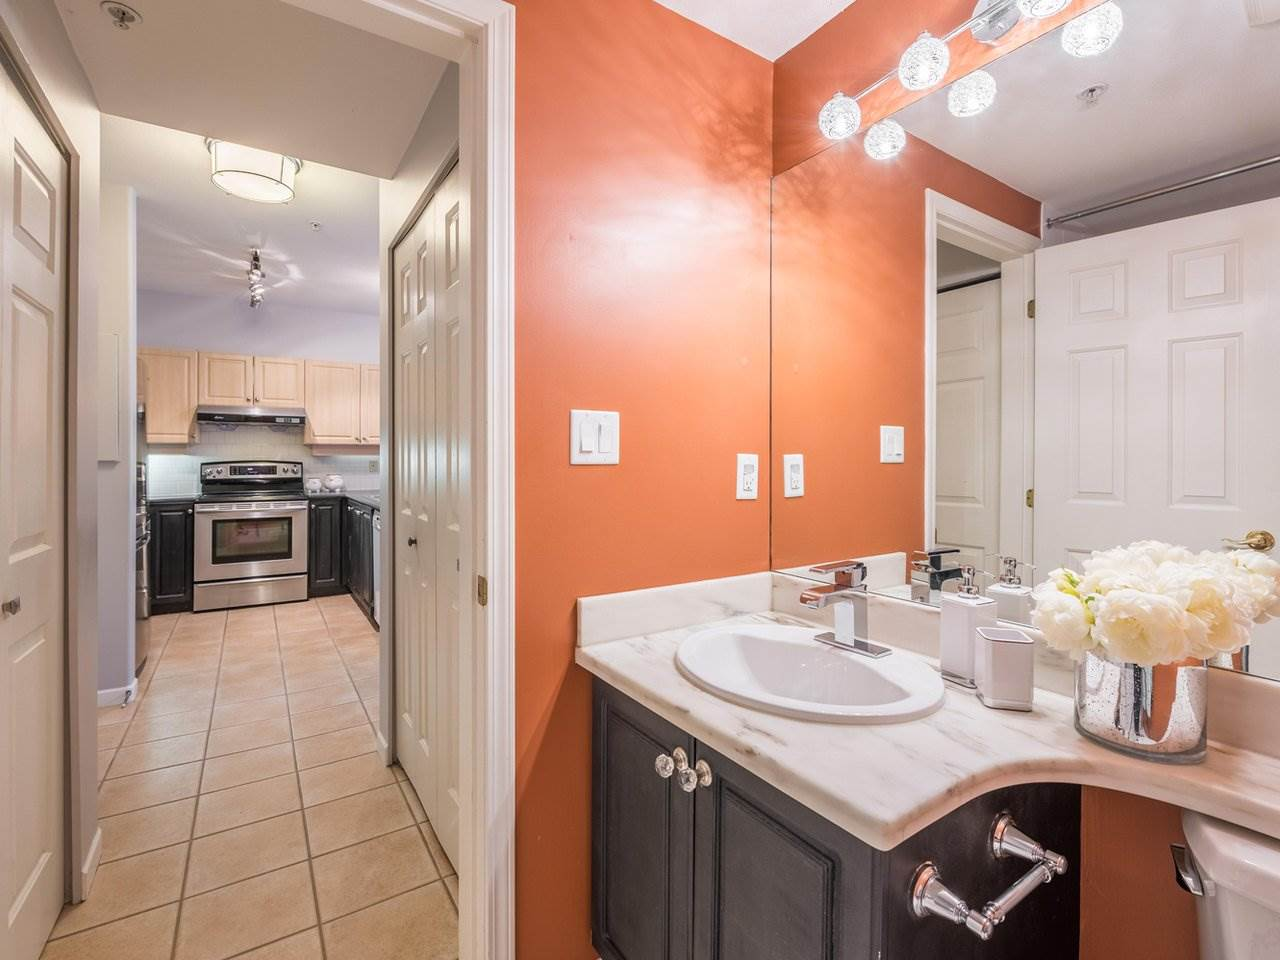 412 3629 DEERCREST DRIVE - Roche Point Apartment/Condo for sale, 1 Bedroom (R2525424) - #30